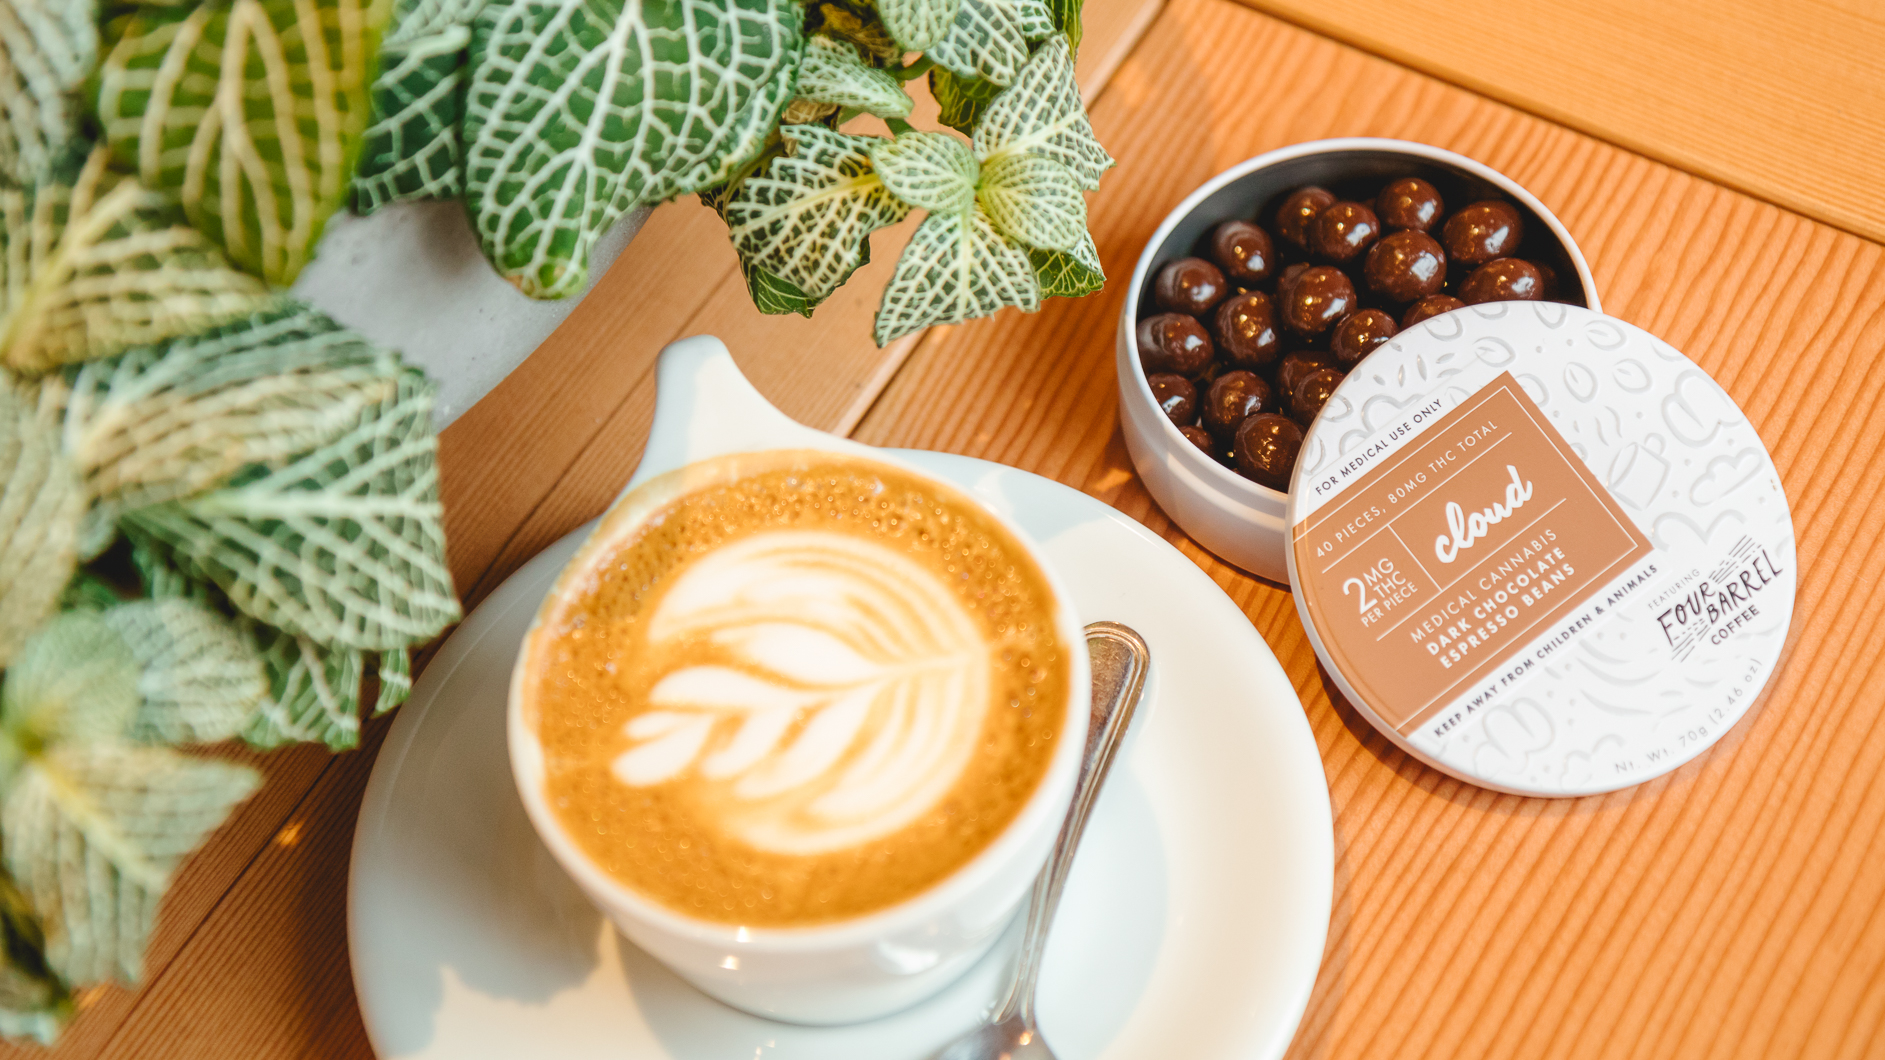 Image of Cloud Confection's Chocolate Espresso Beans with a cup of latte.